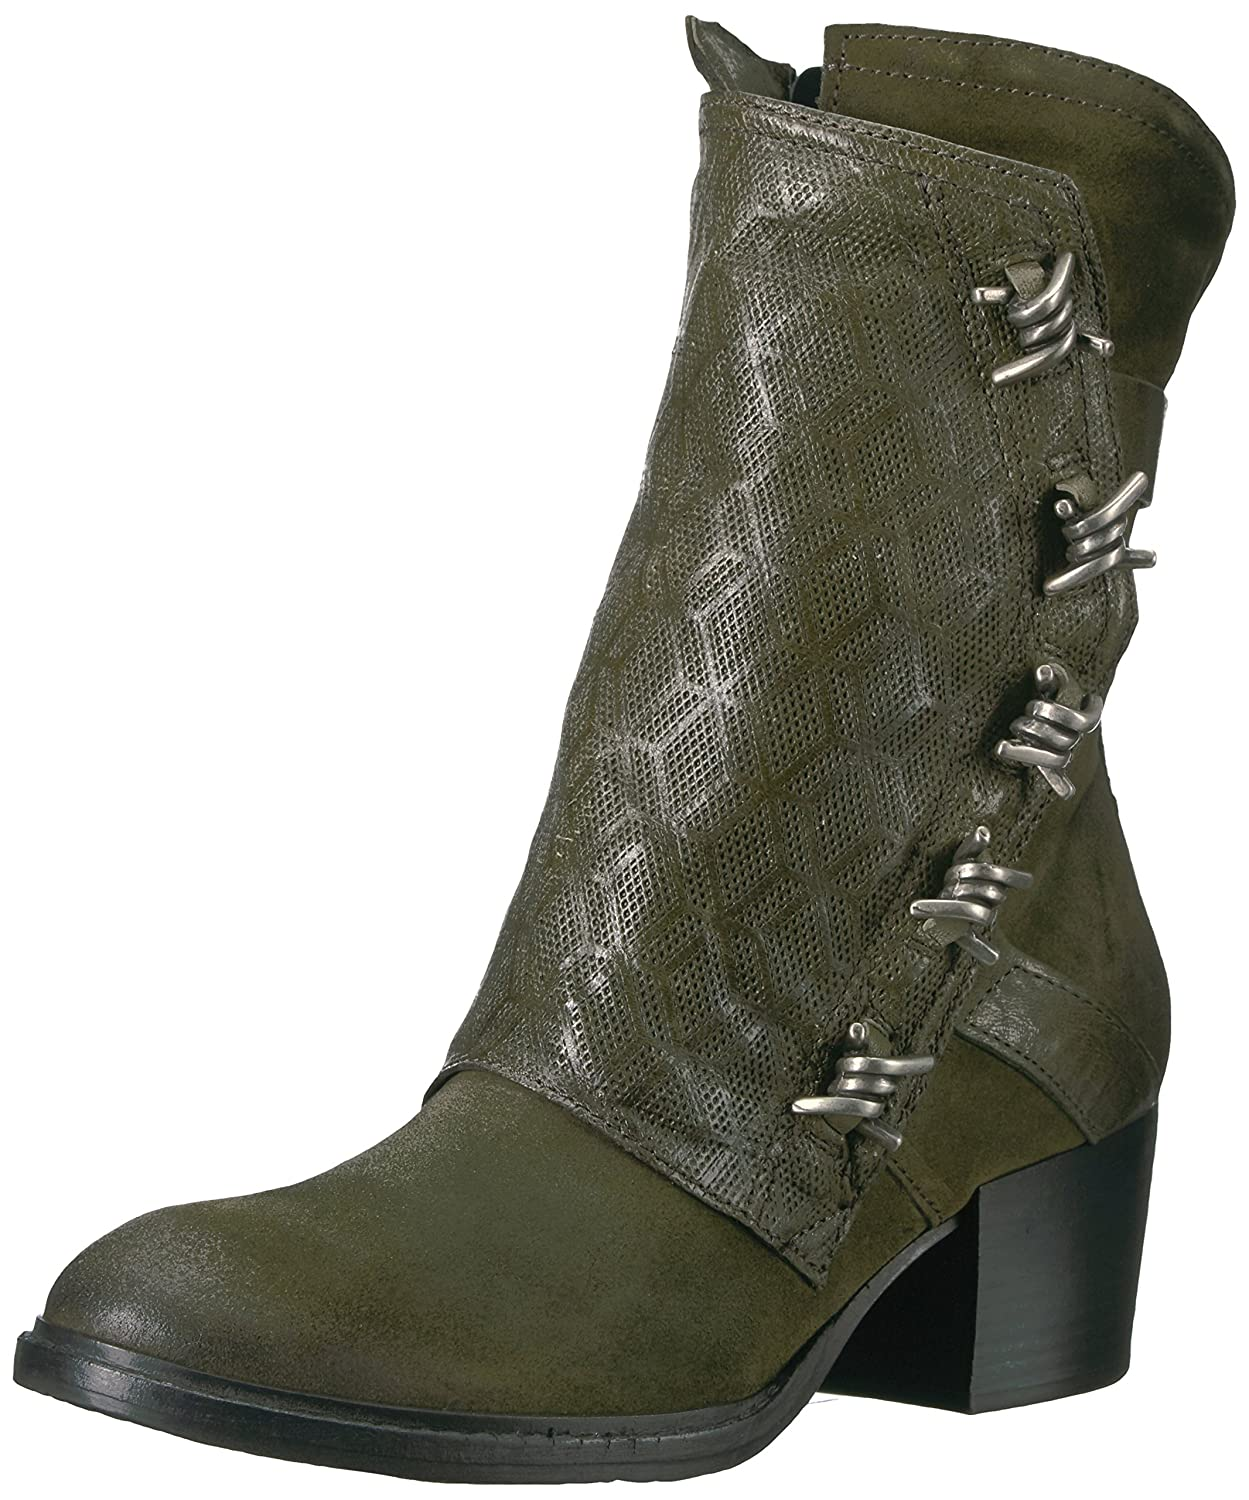 Miz Mooz Women's Tulia Fashion Boot B06XP5VNJT 39 M EU (8.5-9 US)|Army